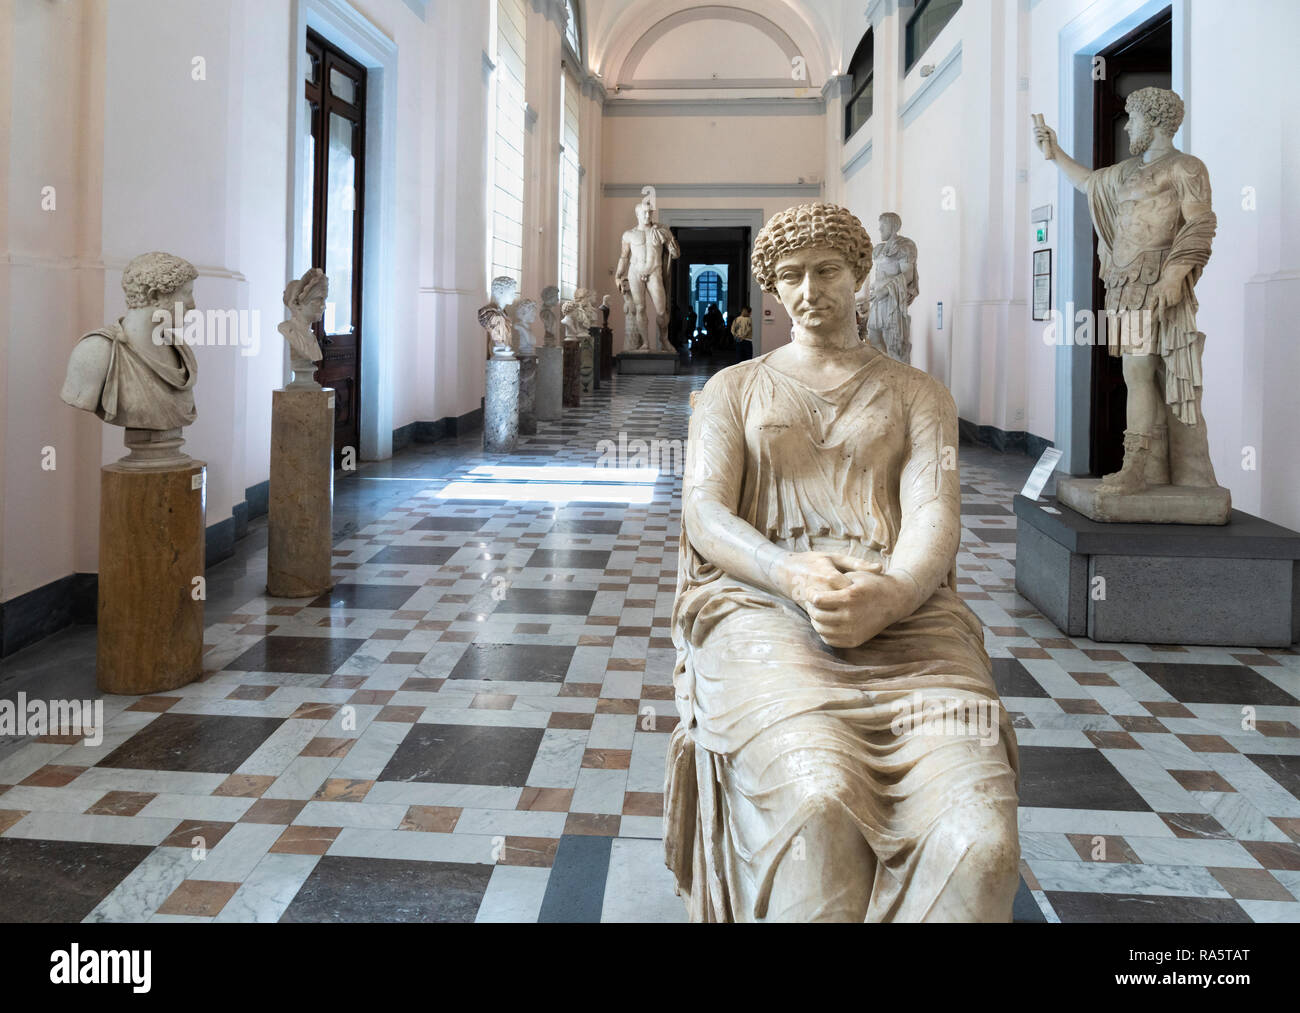 Roman period sculptures on display, including in the foreground, the so called, Agrippina, Neornian-Flavian. In the National Archaeological Museum at  - Stock Image